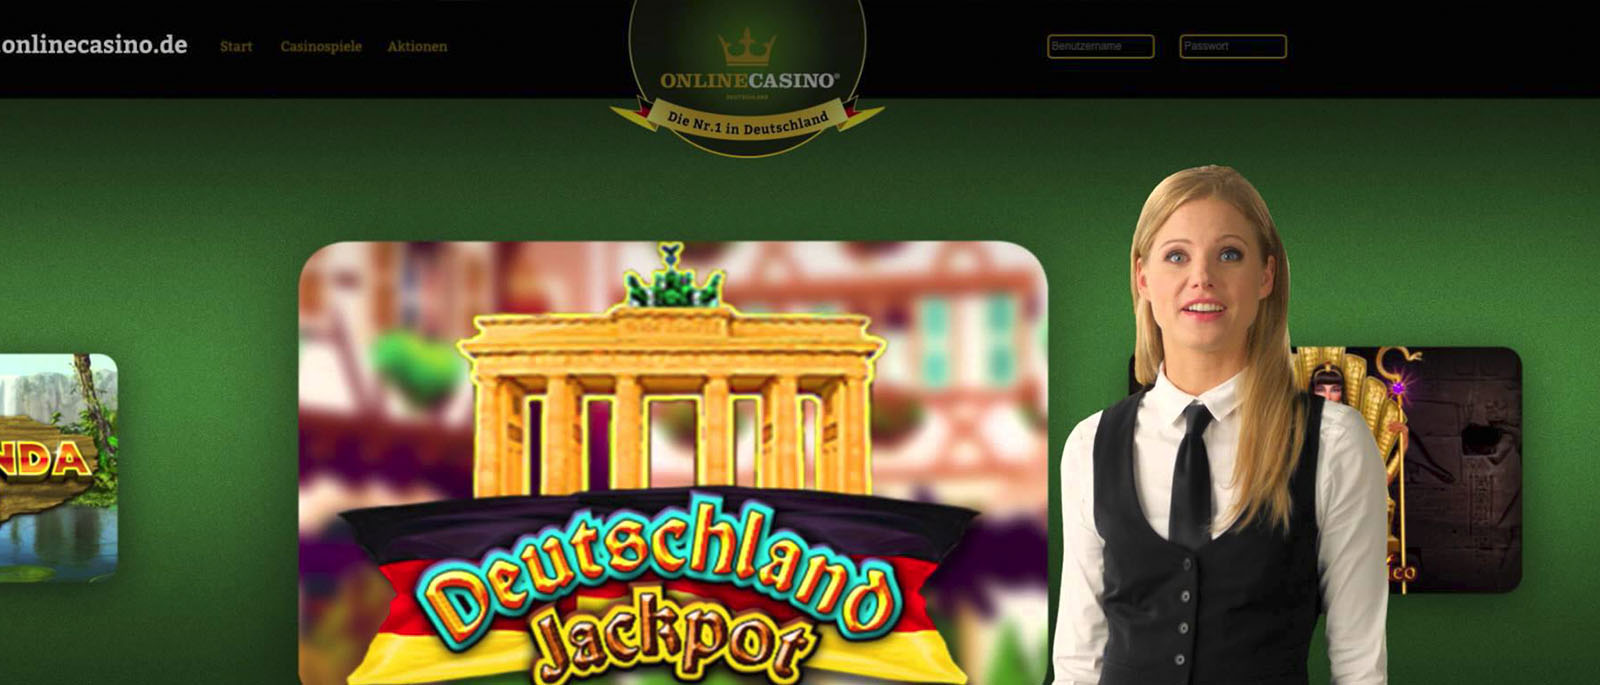 online casino william hill onlinecasino.de